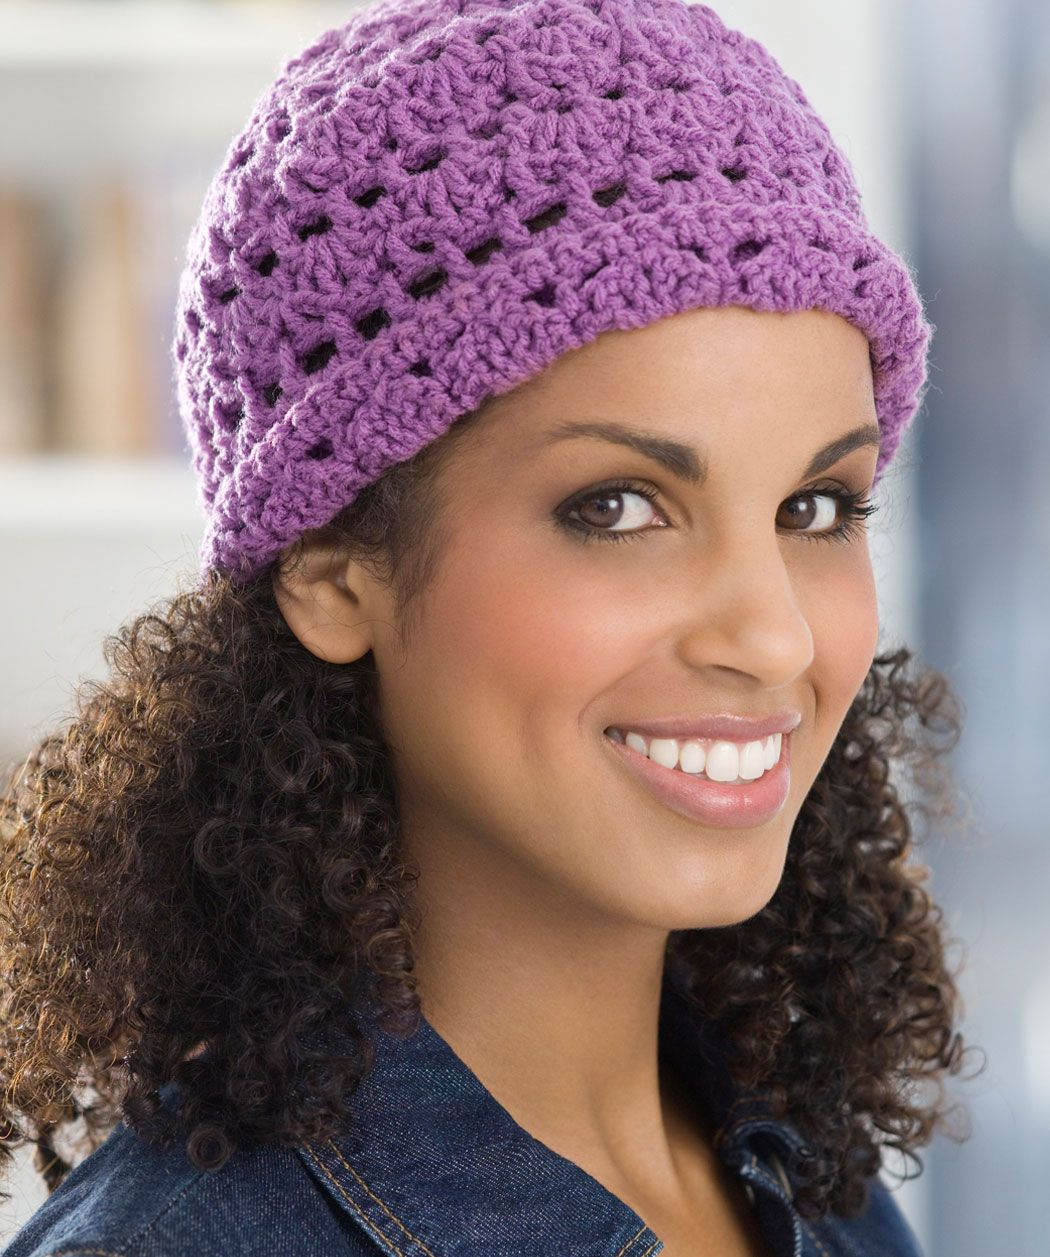 crochet pattern central free hat patterns